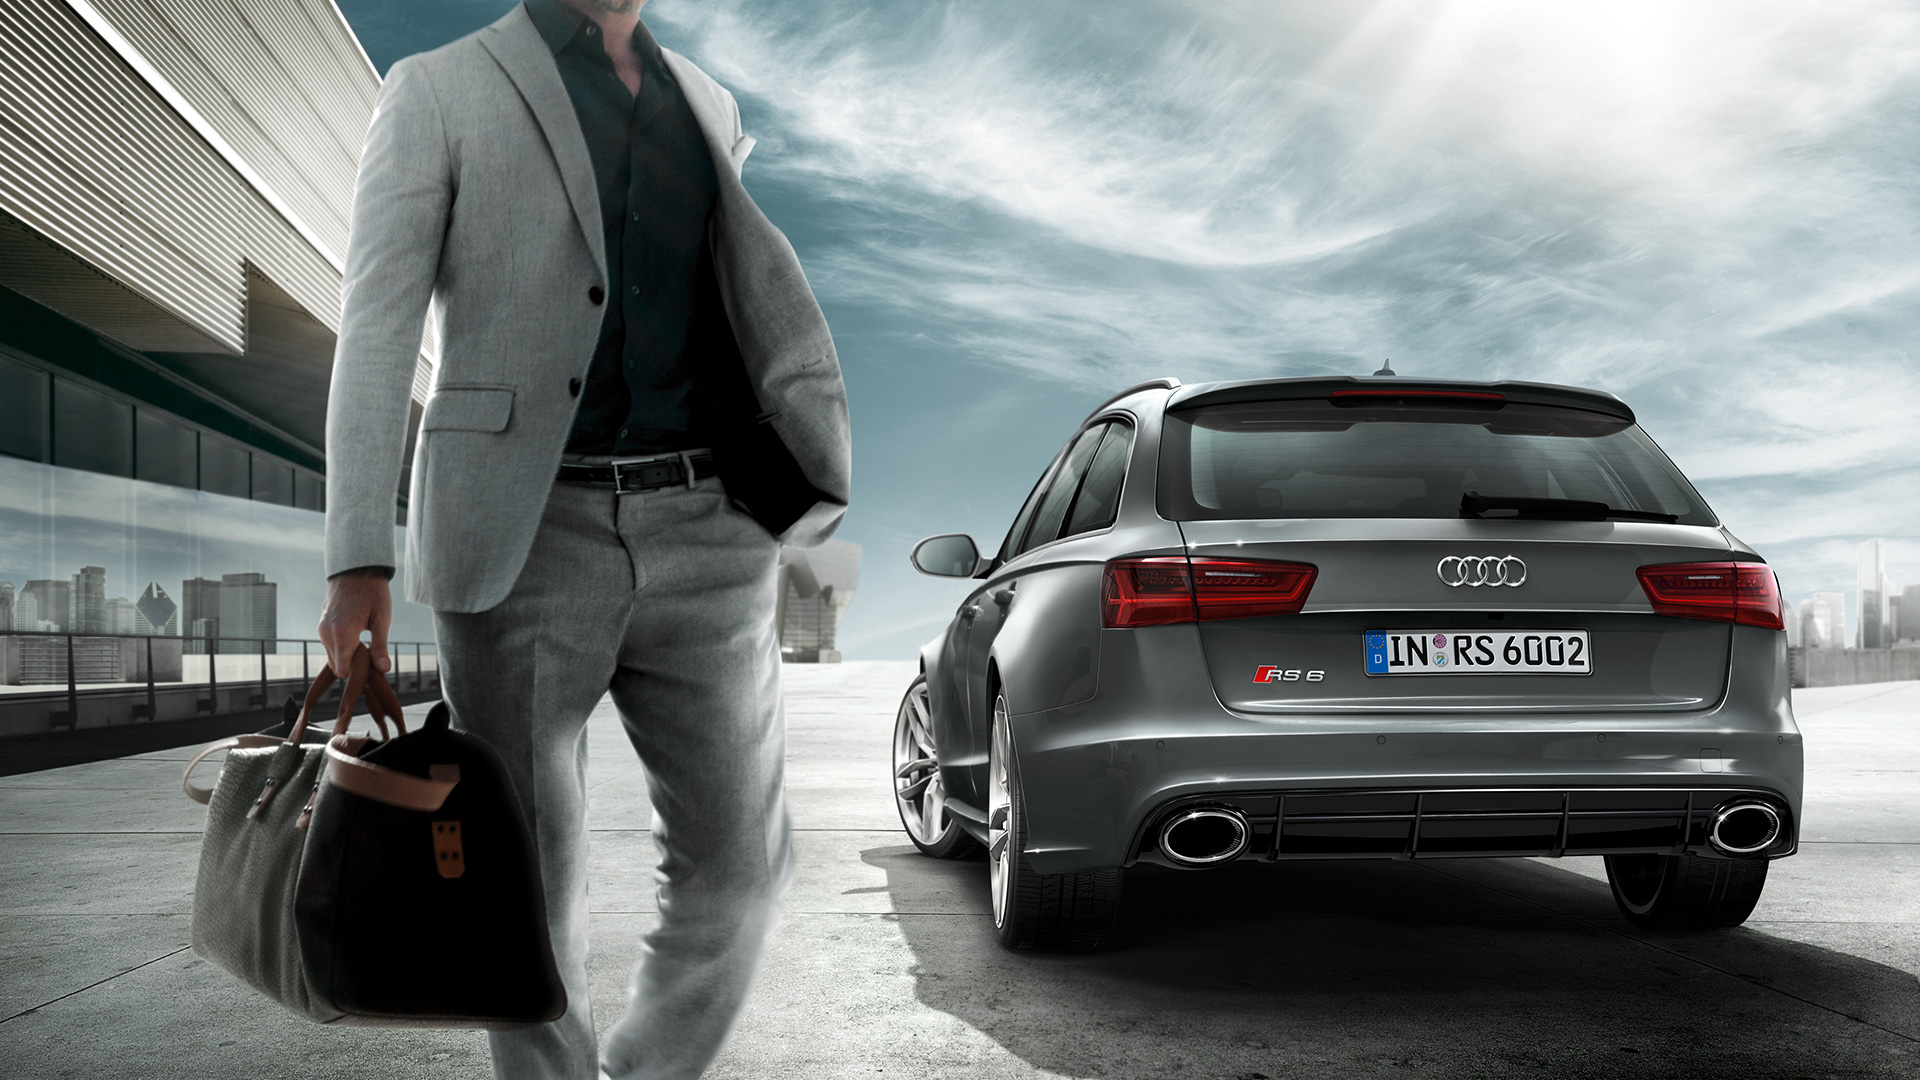 Audi Rs 6 Avant Wallpaper Audi Rs6 255353 Hd